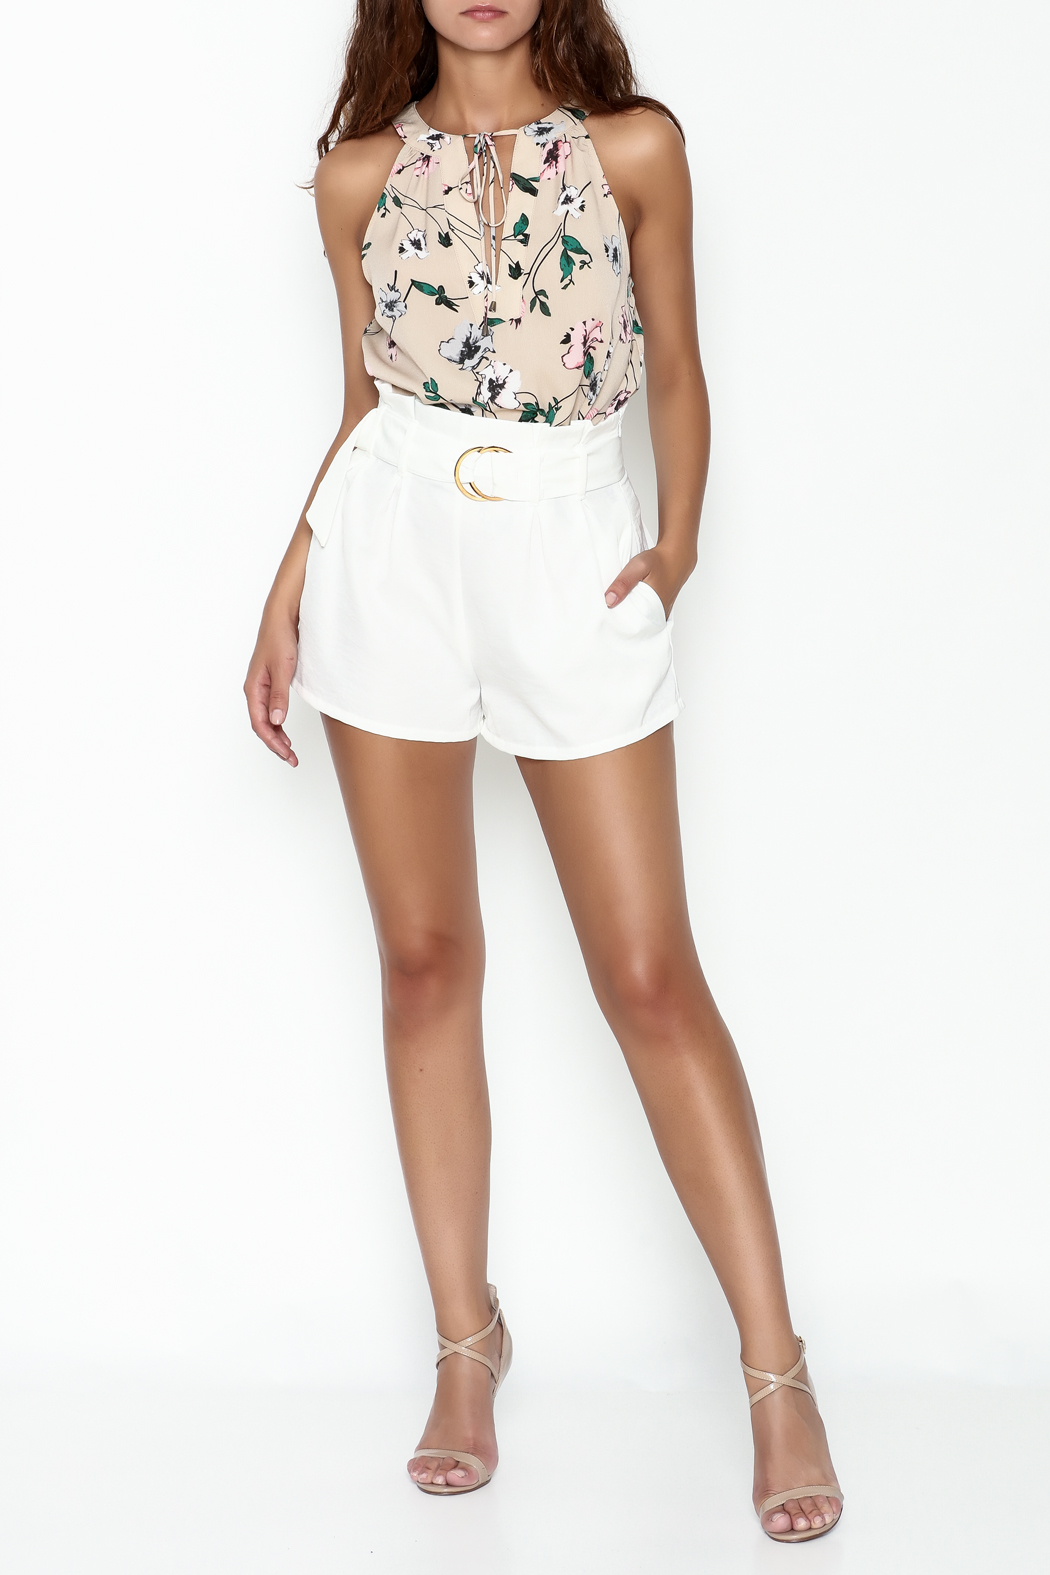 Everly Floral Halter Top - Side Cropped Image